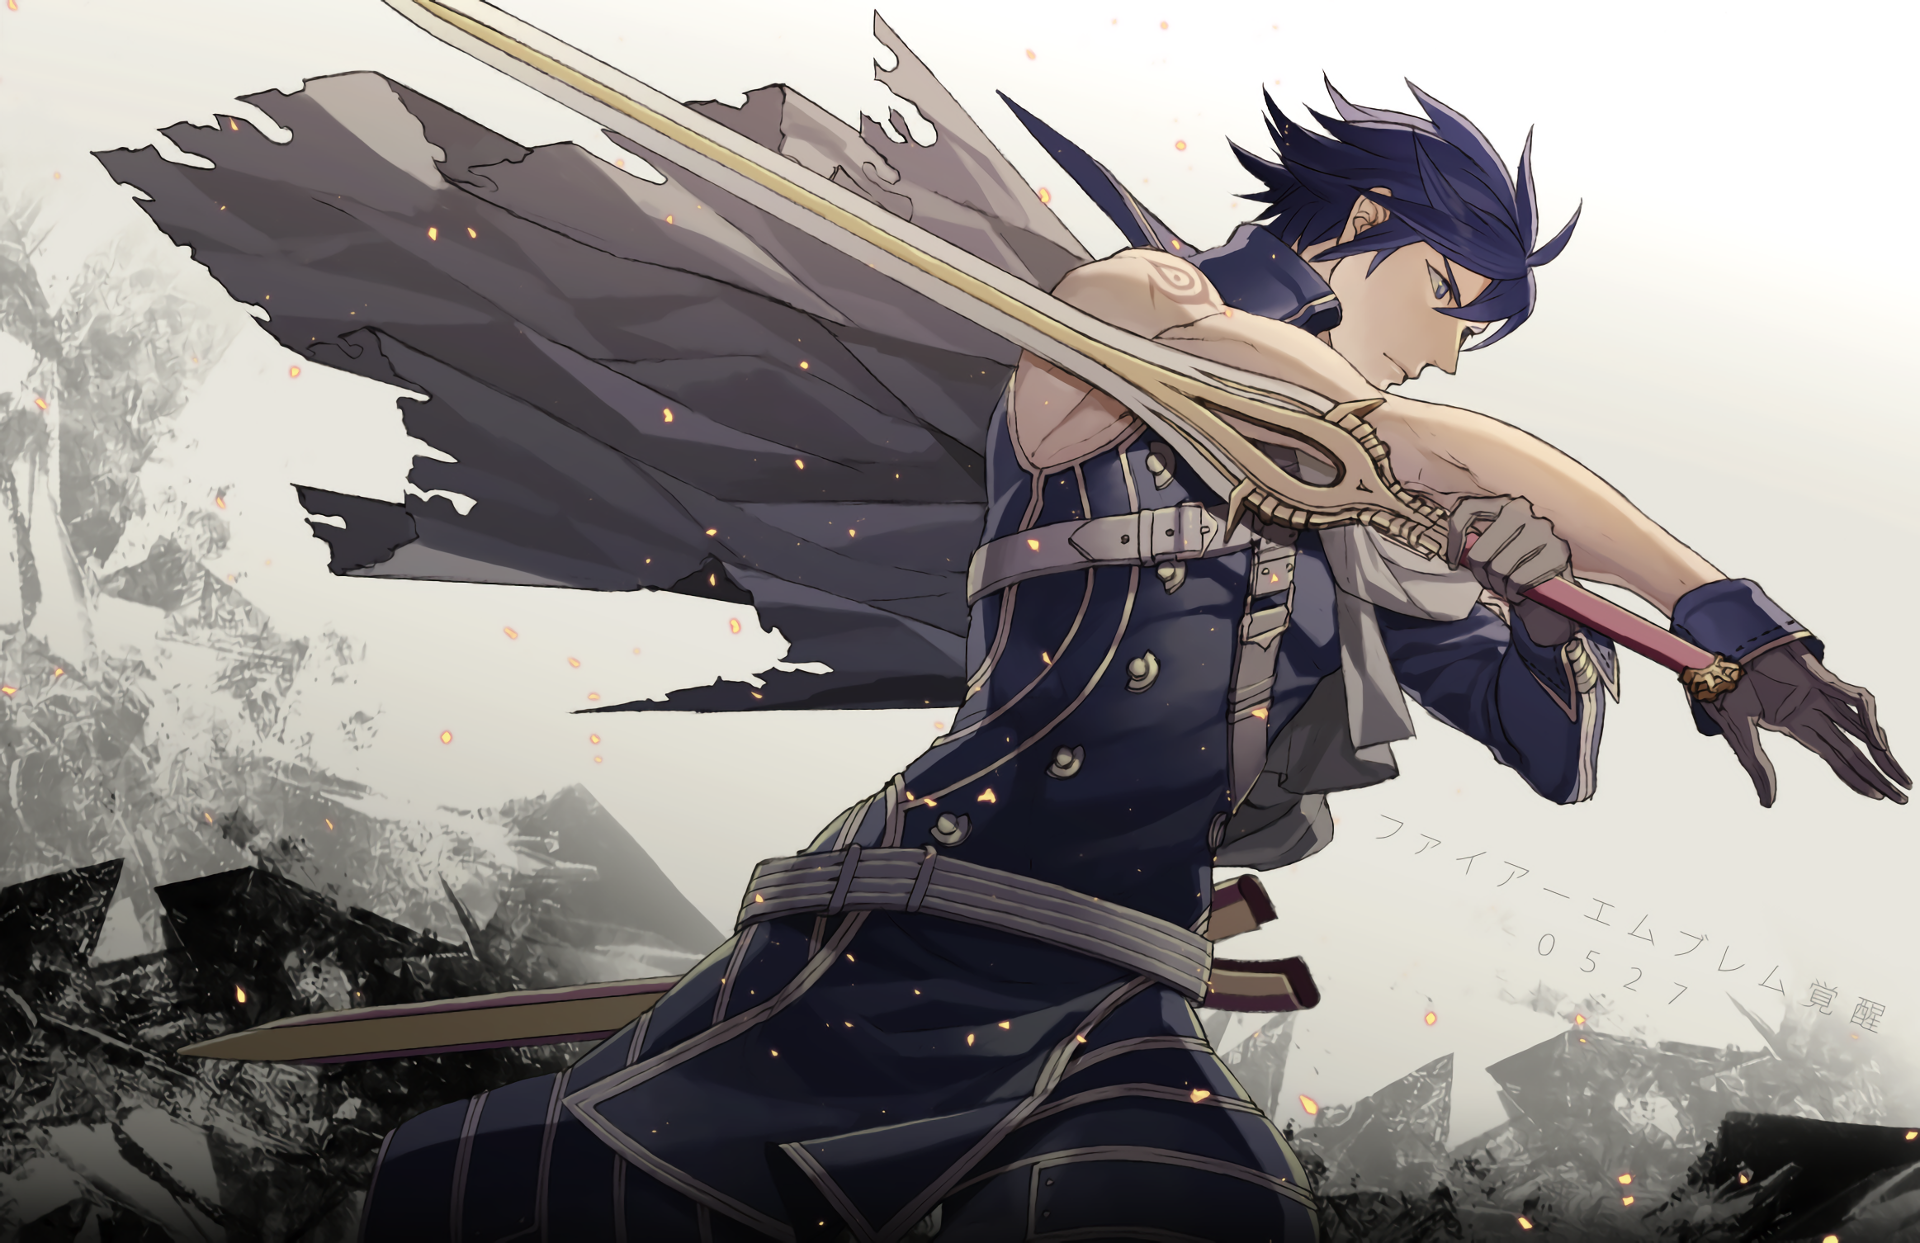 Fire Emblem Awakening HD Wallpaper Background Image 1920x1243 1920x1243